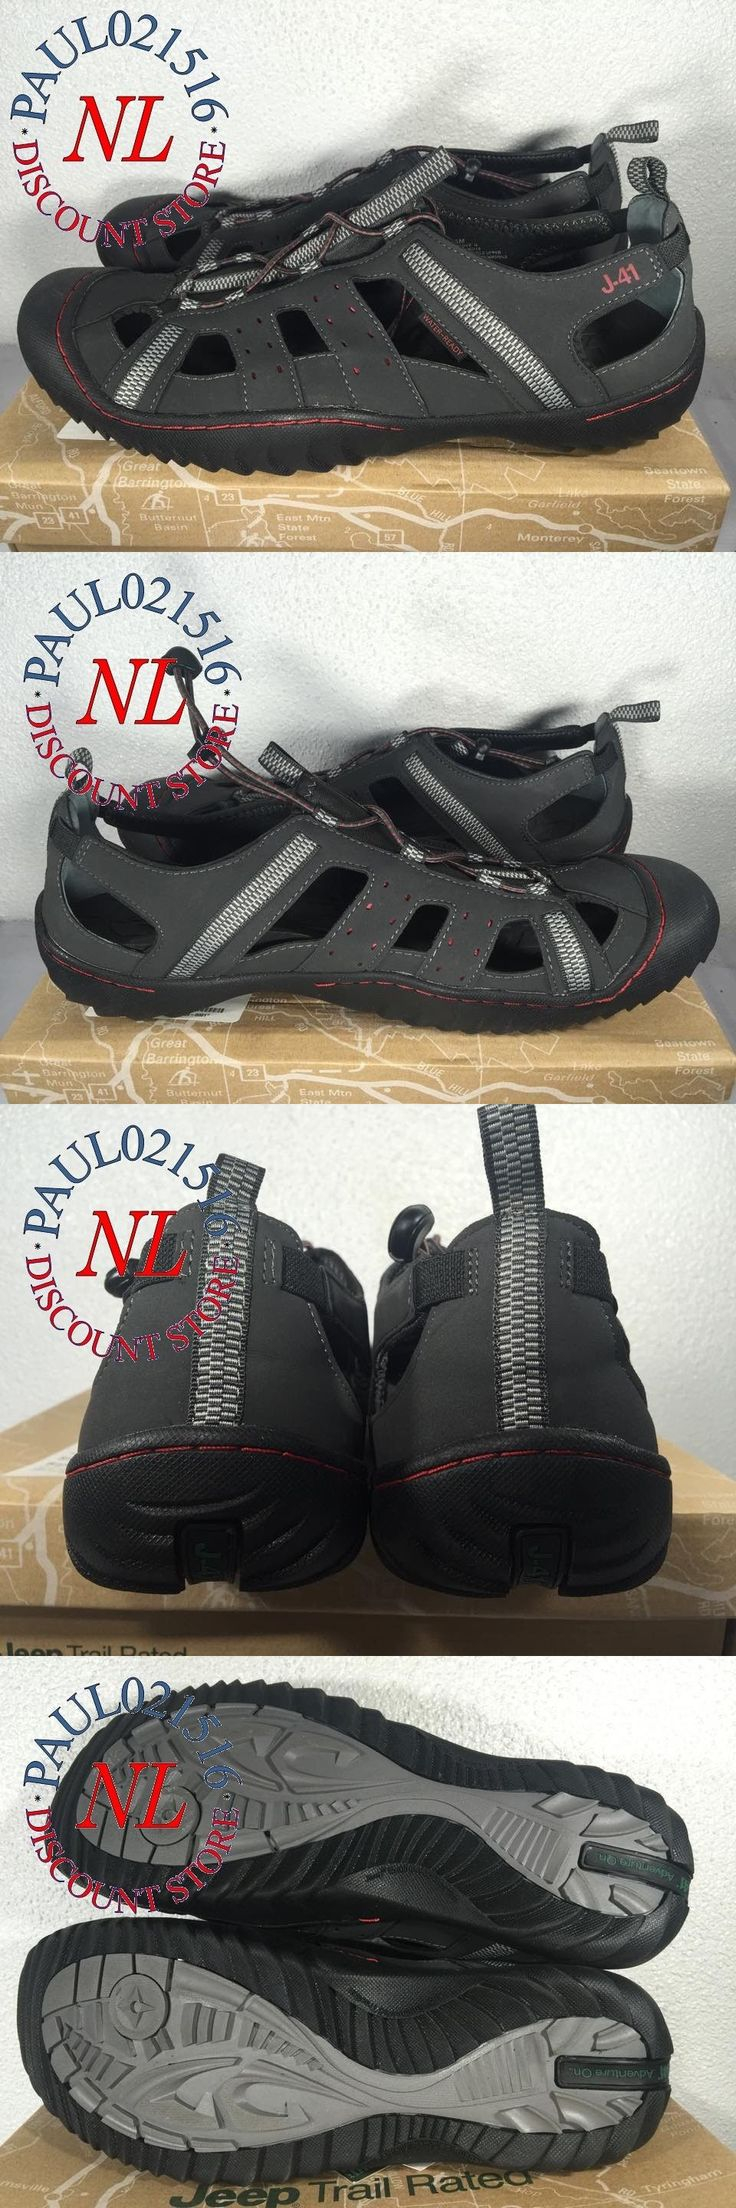 Men 159144: *New* Men S Jeep J-41 Groove Ii-All Terrain Hiking Water Shoes ~ Black Red ~ 13 -> BUY IT NOW ONLY: $49.99 on eBay!